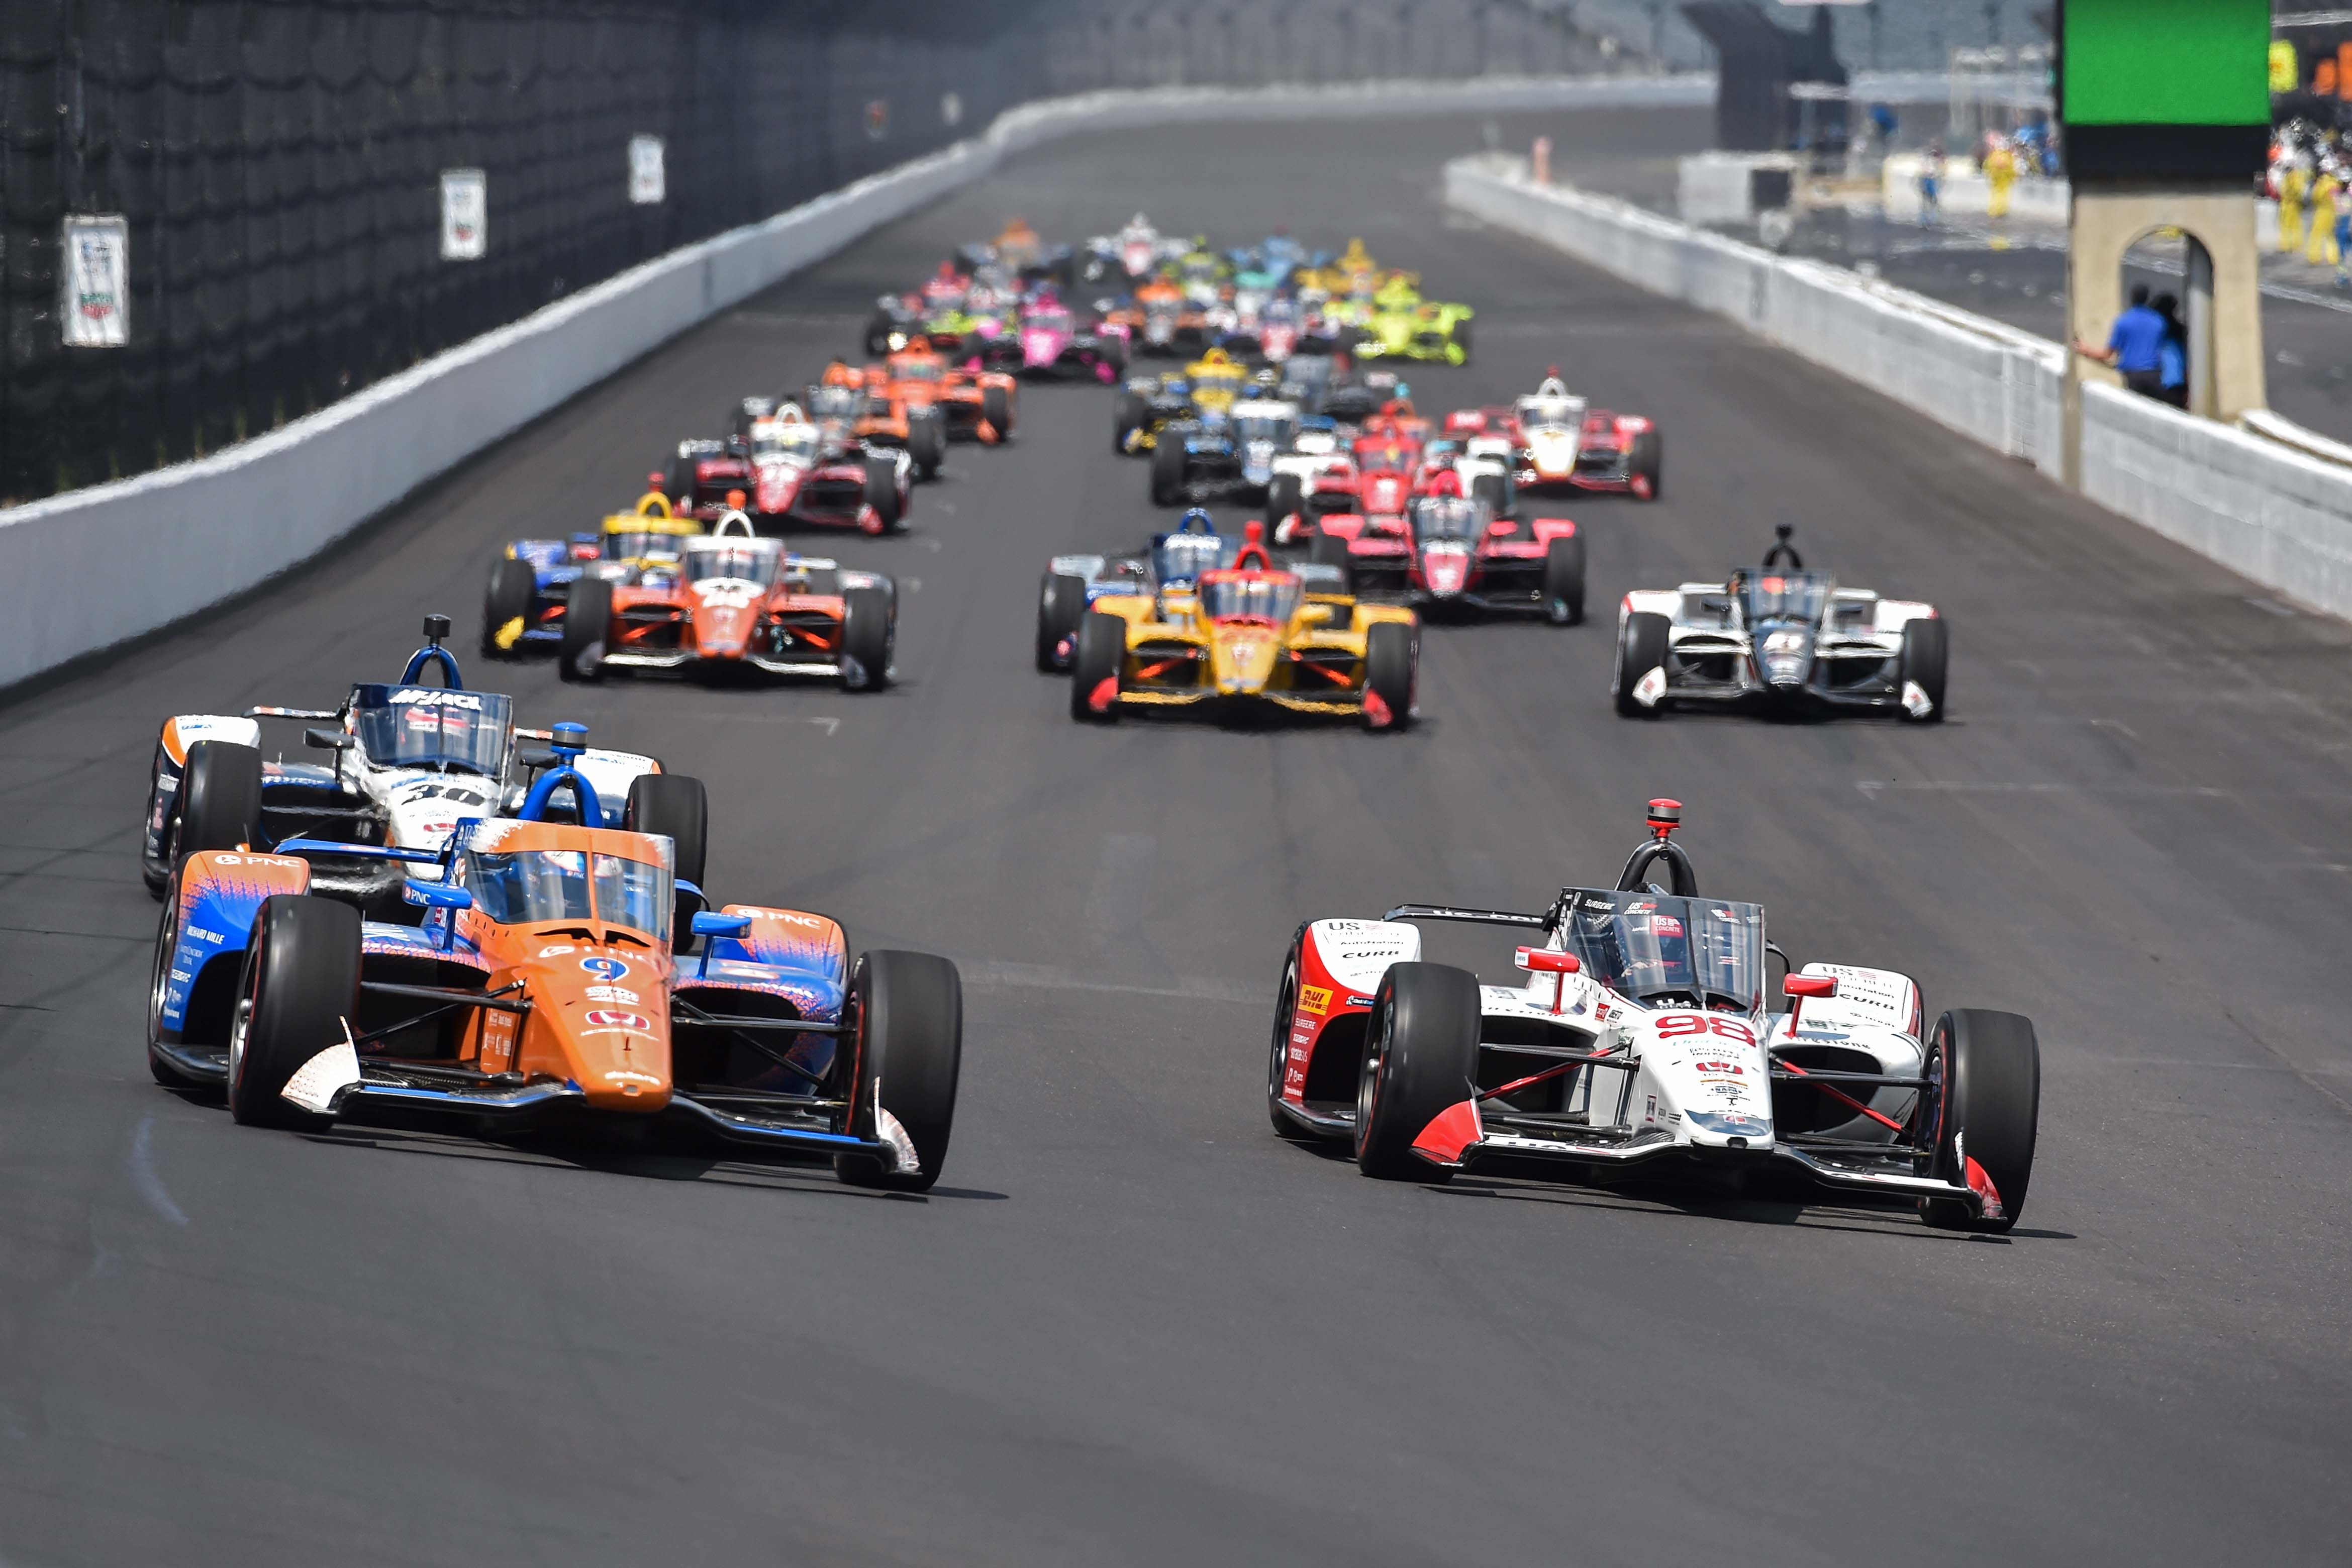 Scott Dixon and Marco Andretti - Indy 500 at Indianapolis Motor Speedway - Indycar Series